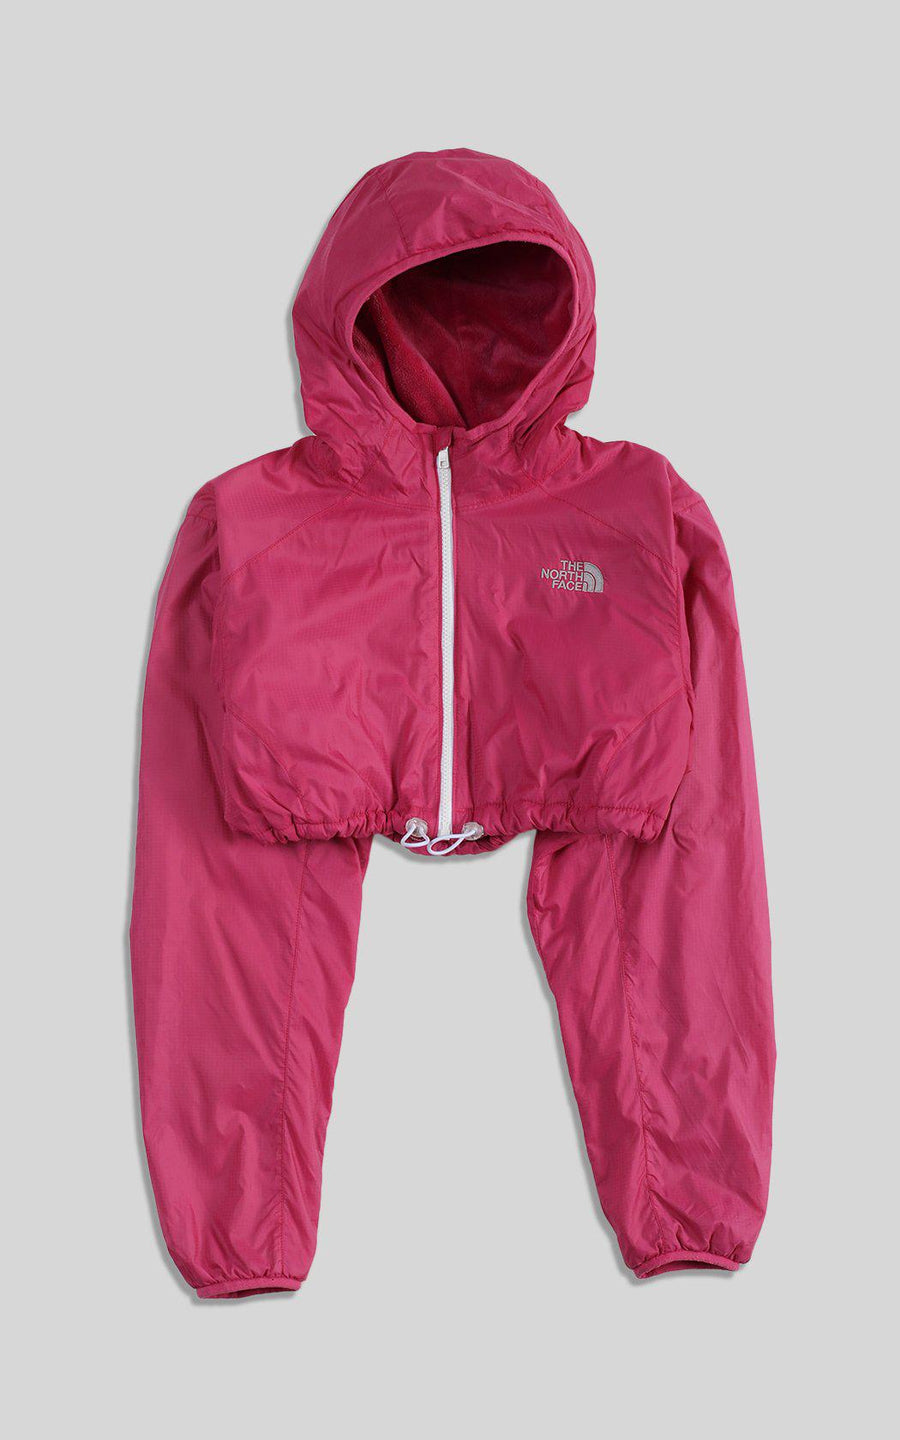 Rework North Face Crop Jacket